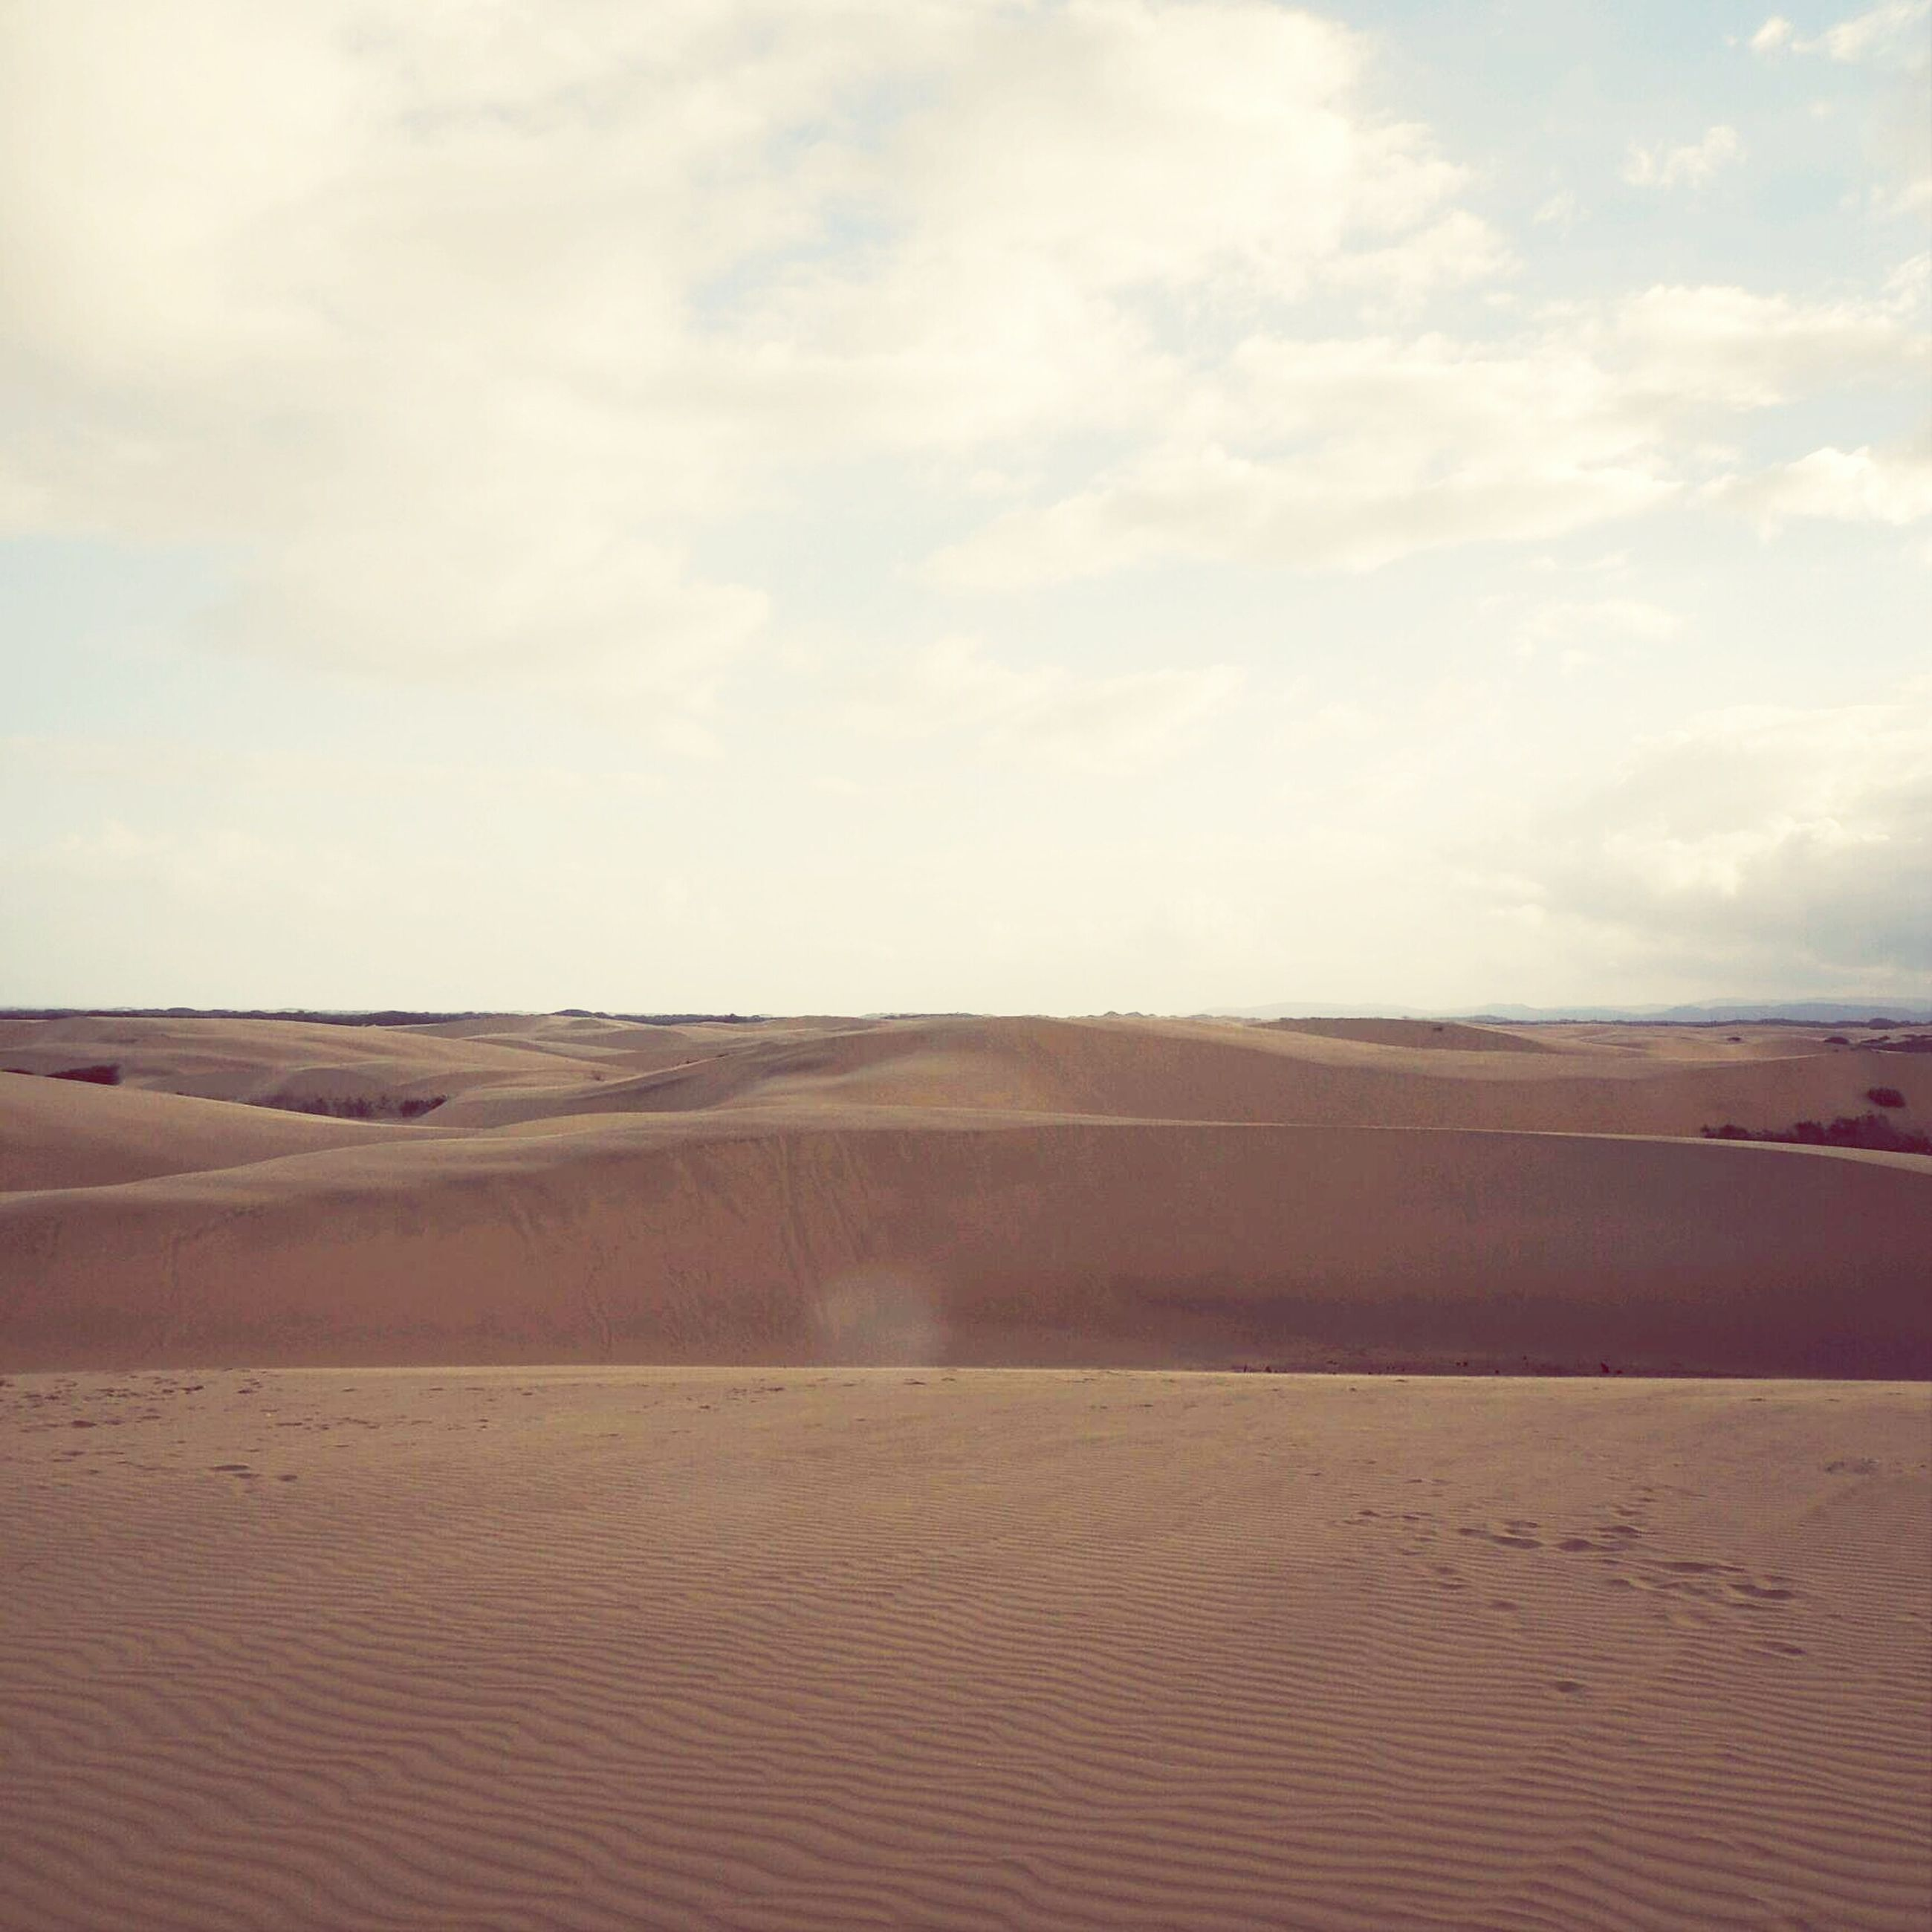 sand, desert, tranquil scene, tranquility, sky, sand dune, landscape, scenics, arid climate, beach, nature, beauty in nature, remote, barren, footprint, non-urban scene, cloud - sky, horizon over land, cloud, day